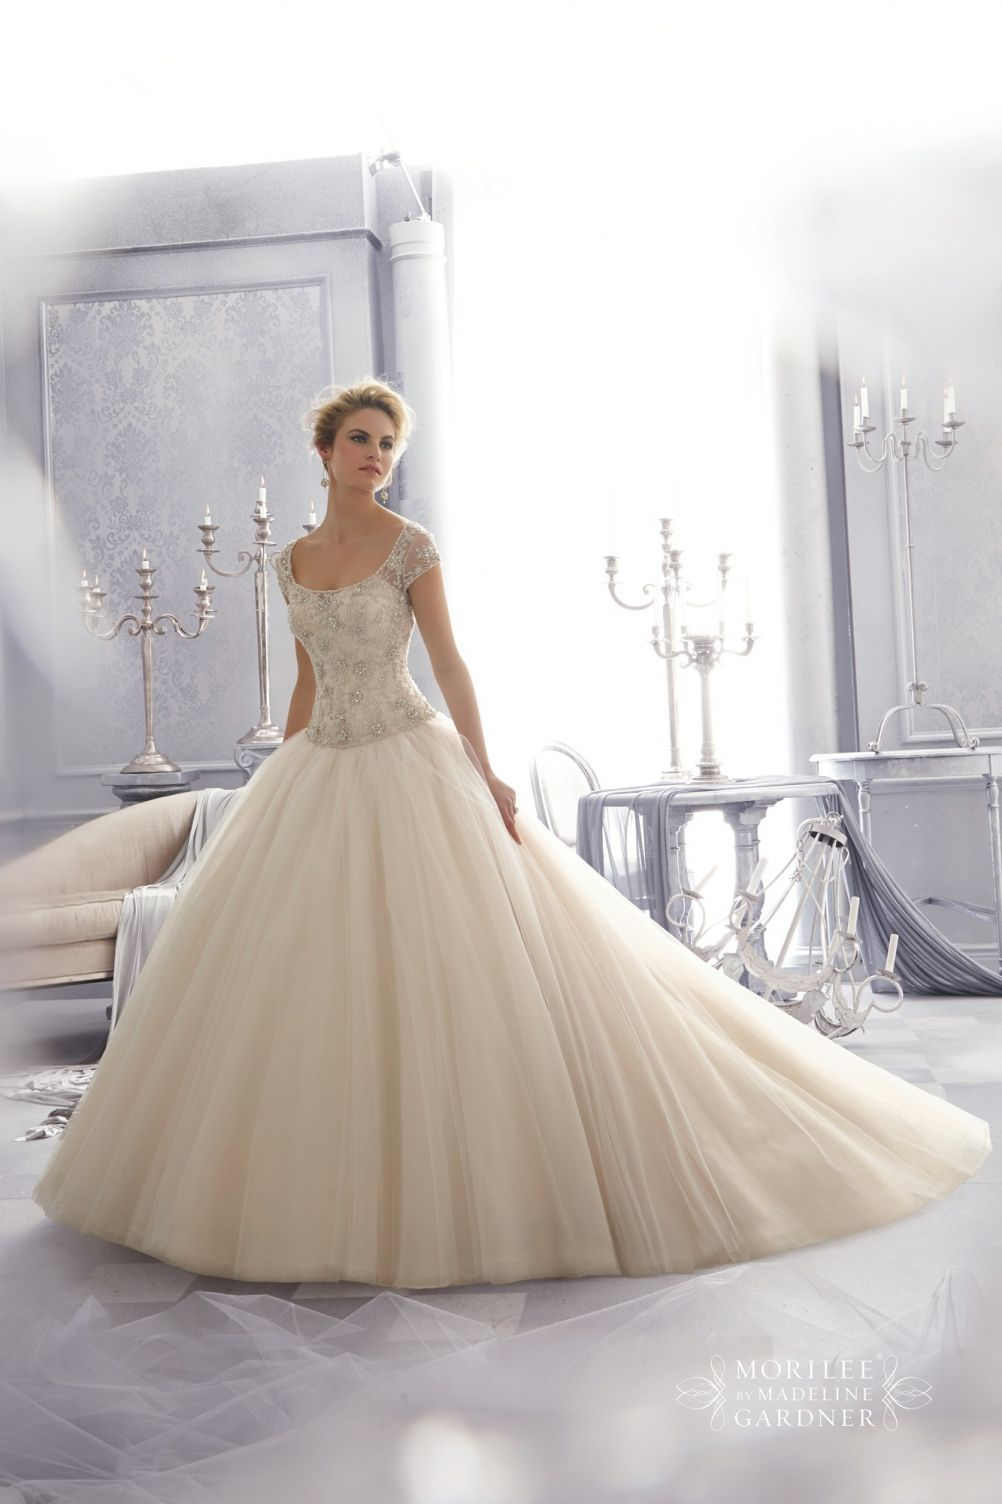 Mori Lee Wedding Dresses Prices Dress For Country Wedding Guest Check More At Http Svesty Com Modest Wedding Dresses Mori Lee Wedding Dress Bridal Dresses